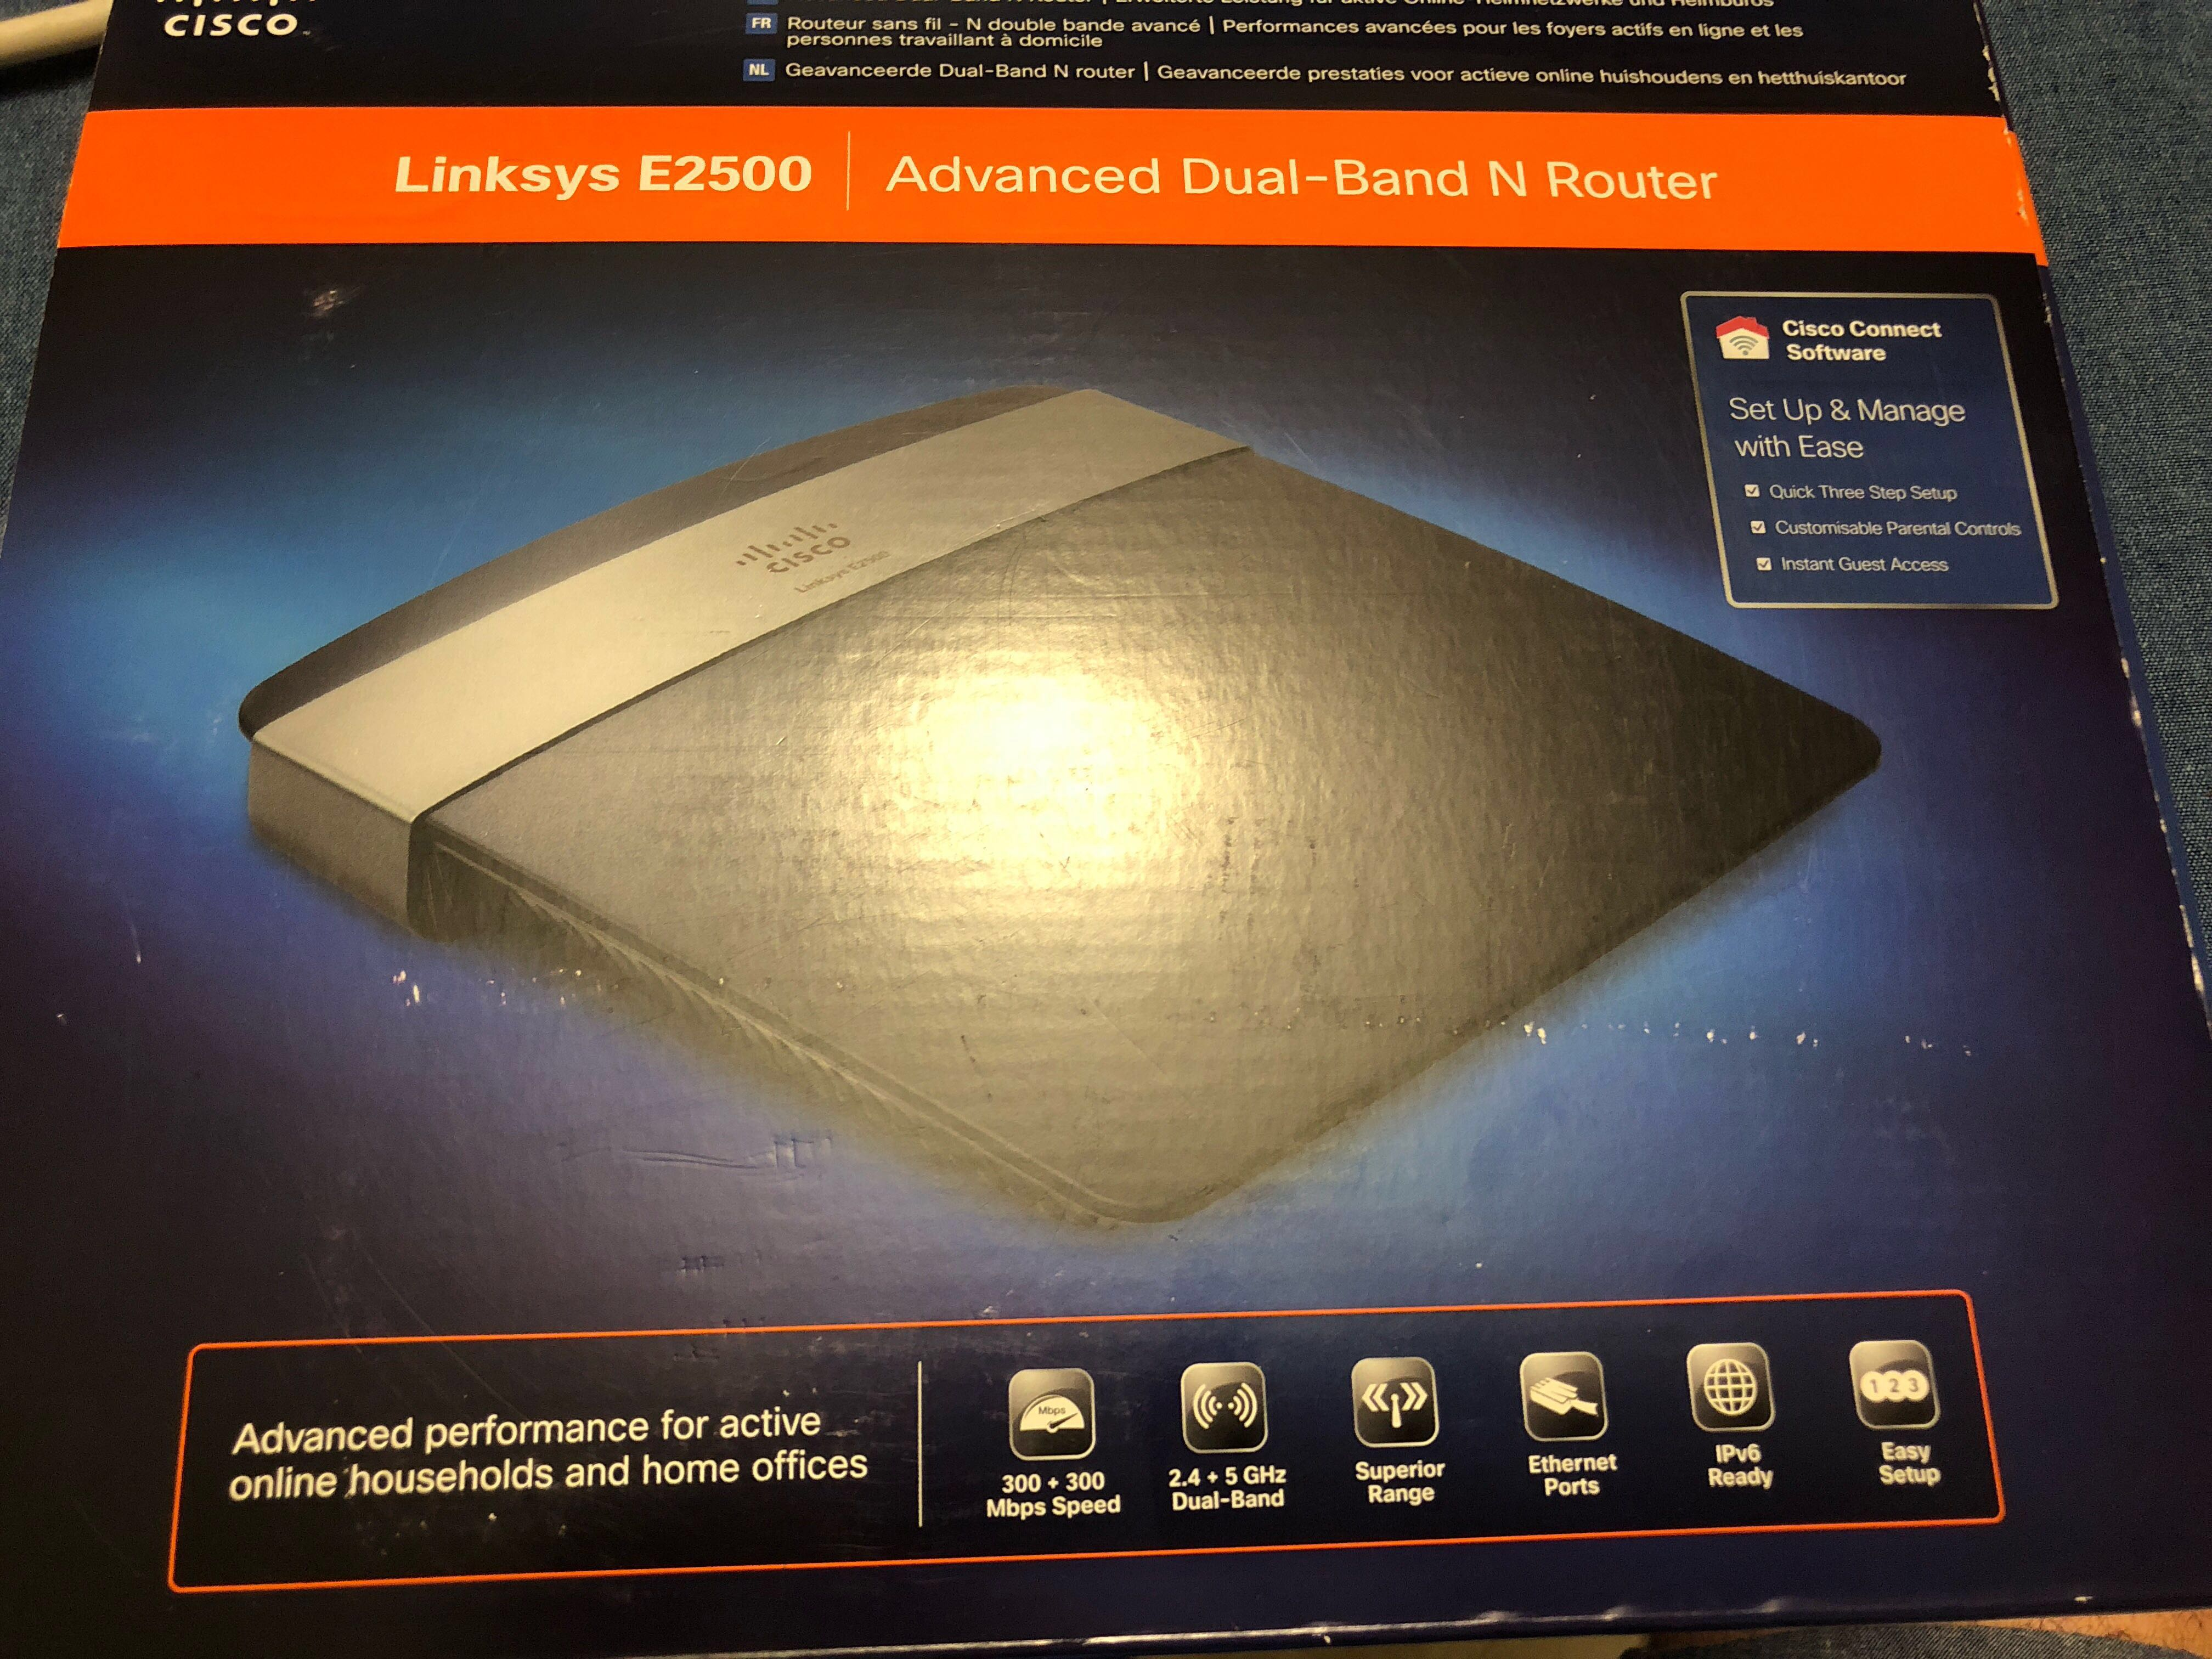 Linksys E2500 - Advanced Dual Band N Router